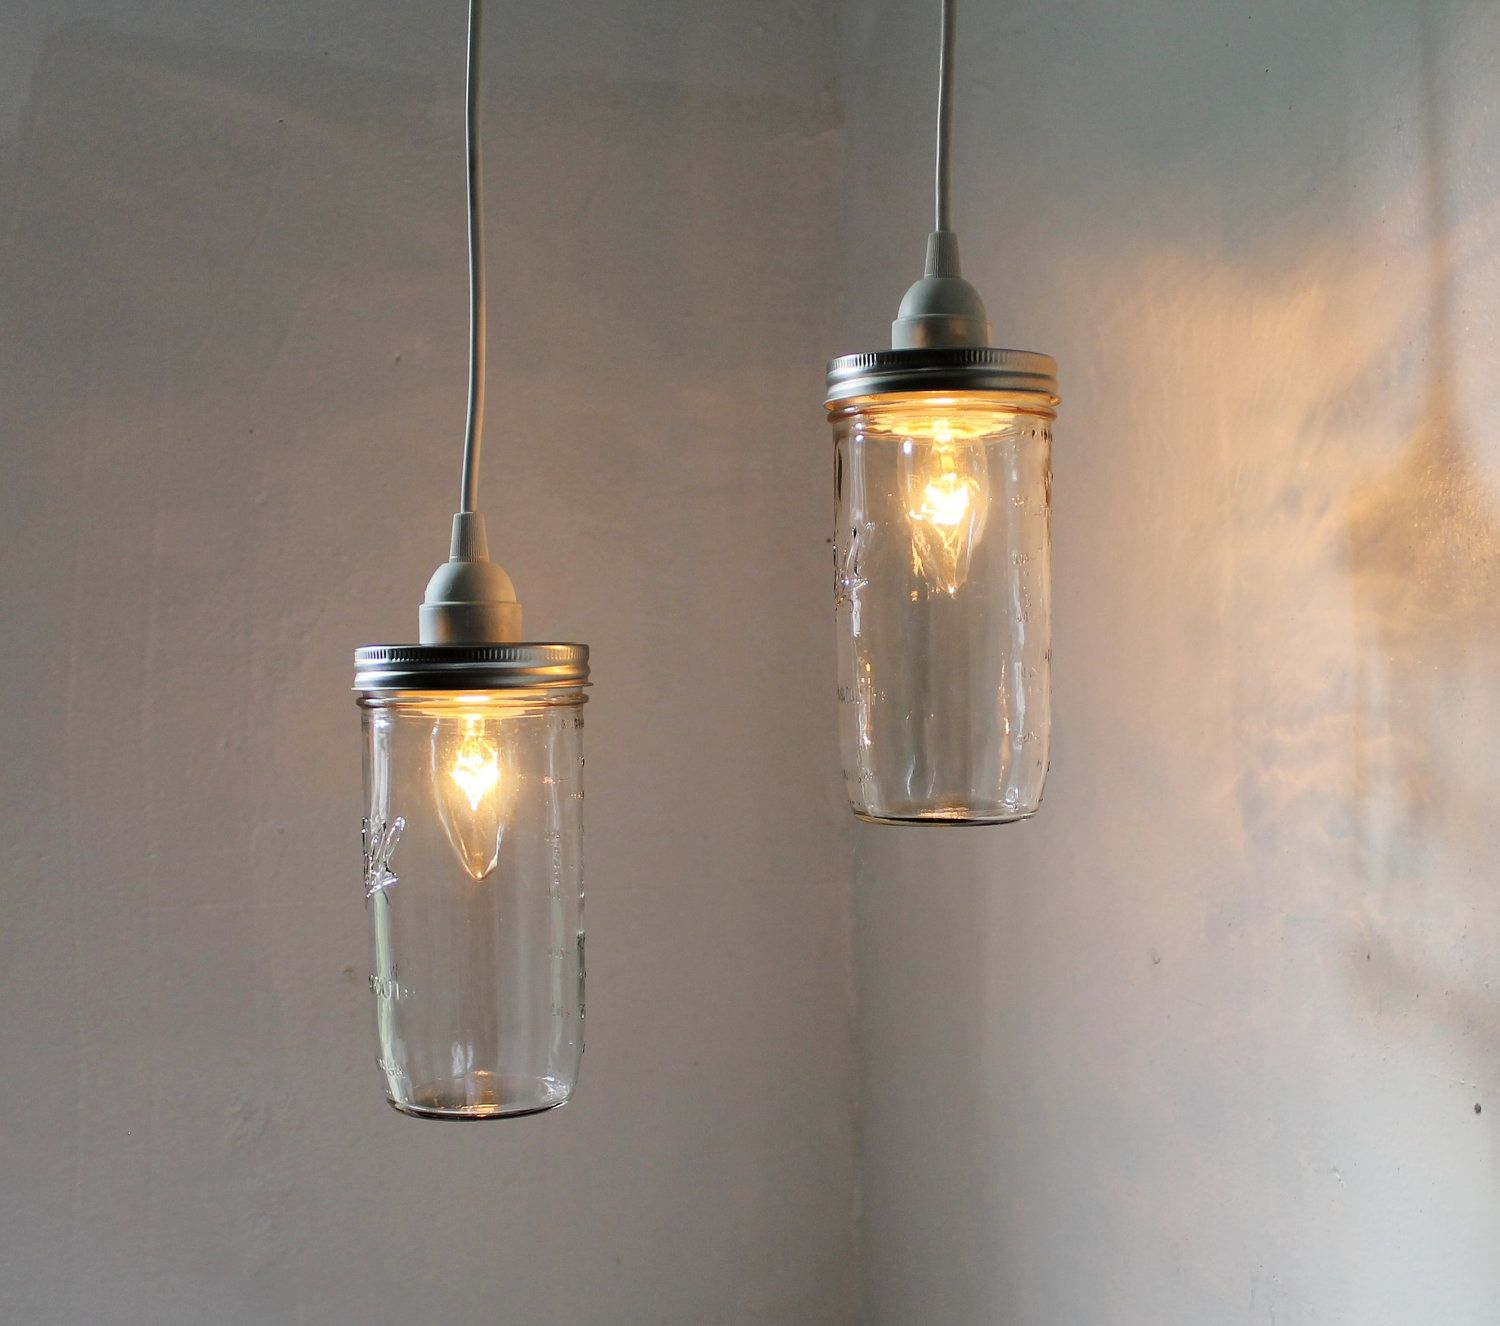 Stargaze set of 2 hanging mason jar pendant lights rustic modern stargaze set of 2 hanging mason jar pendant lights rustic modern country lighting fixtures arubaitofo Gallery